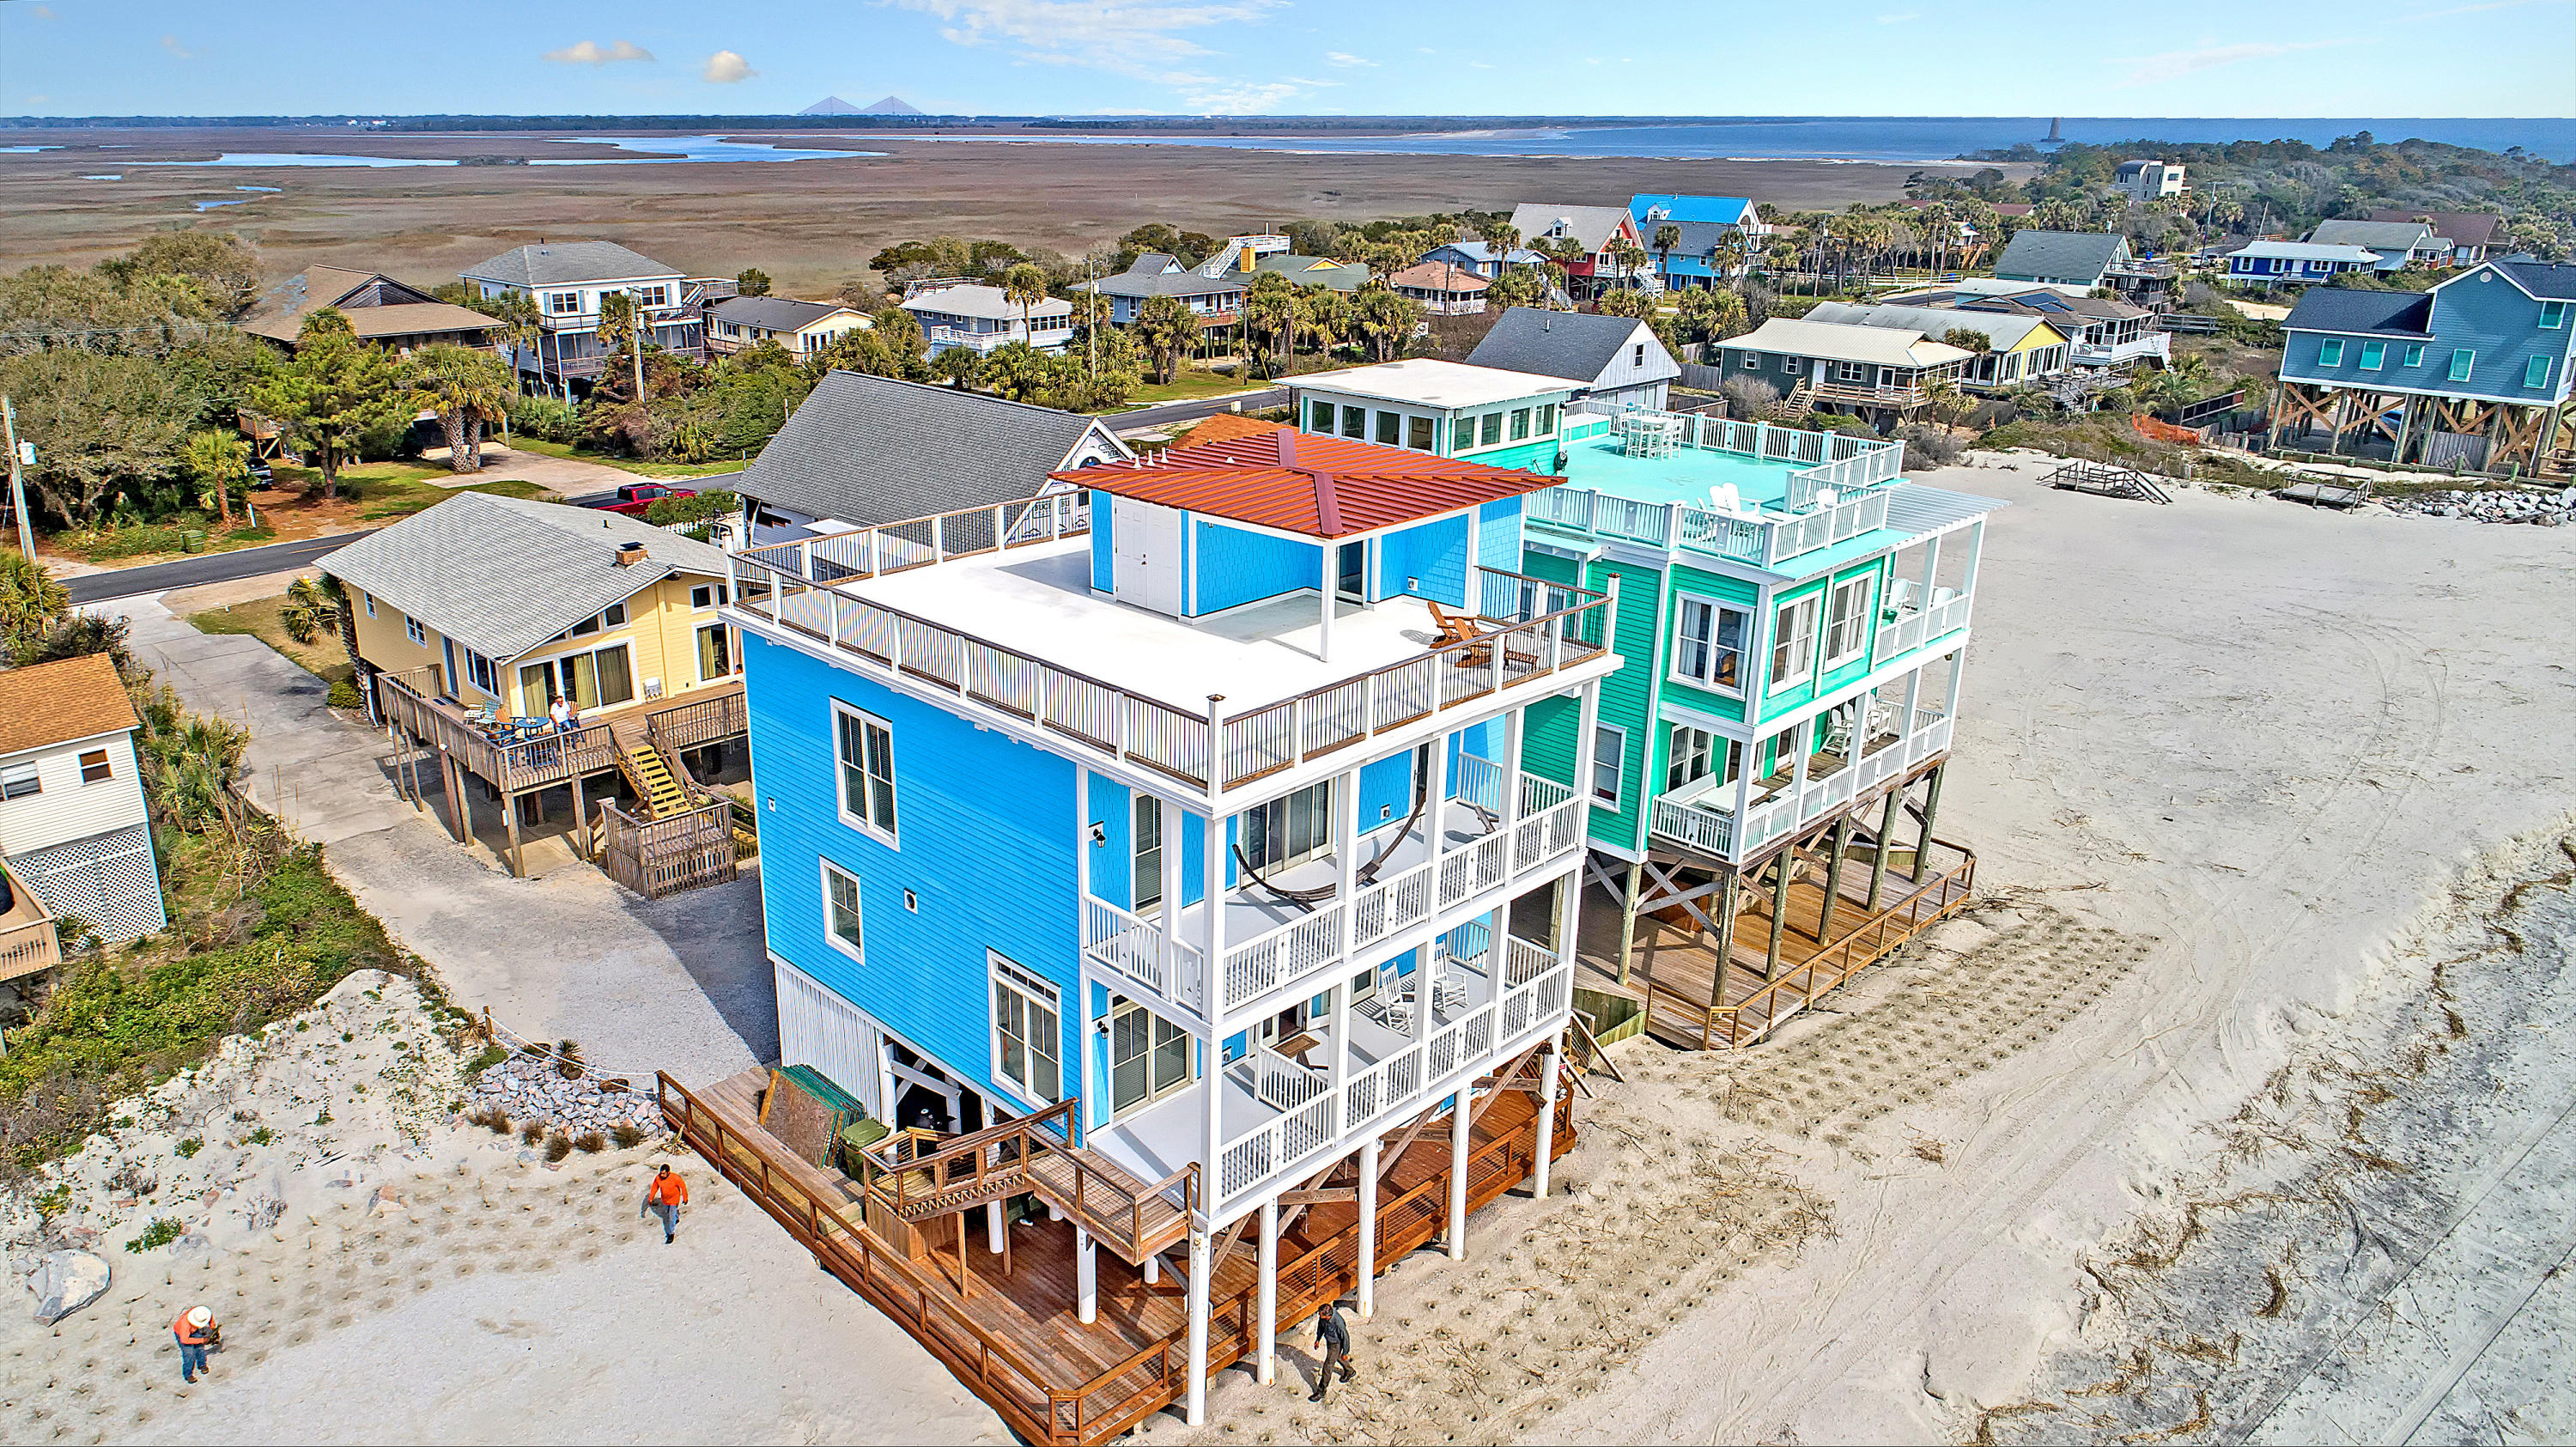 E Folly Bch Shores Homes For Sale - 1707 Ashley, Folly Beach, SC - 22